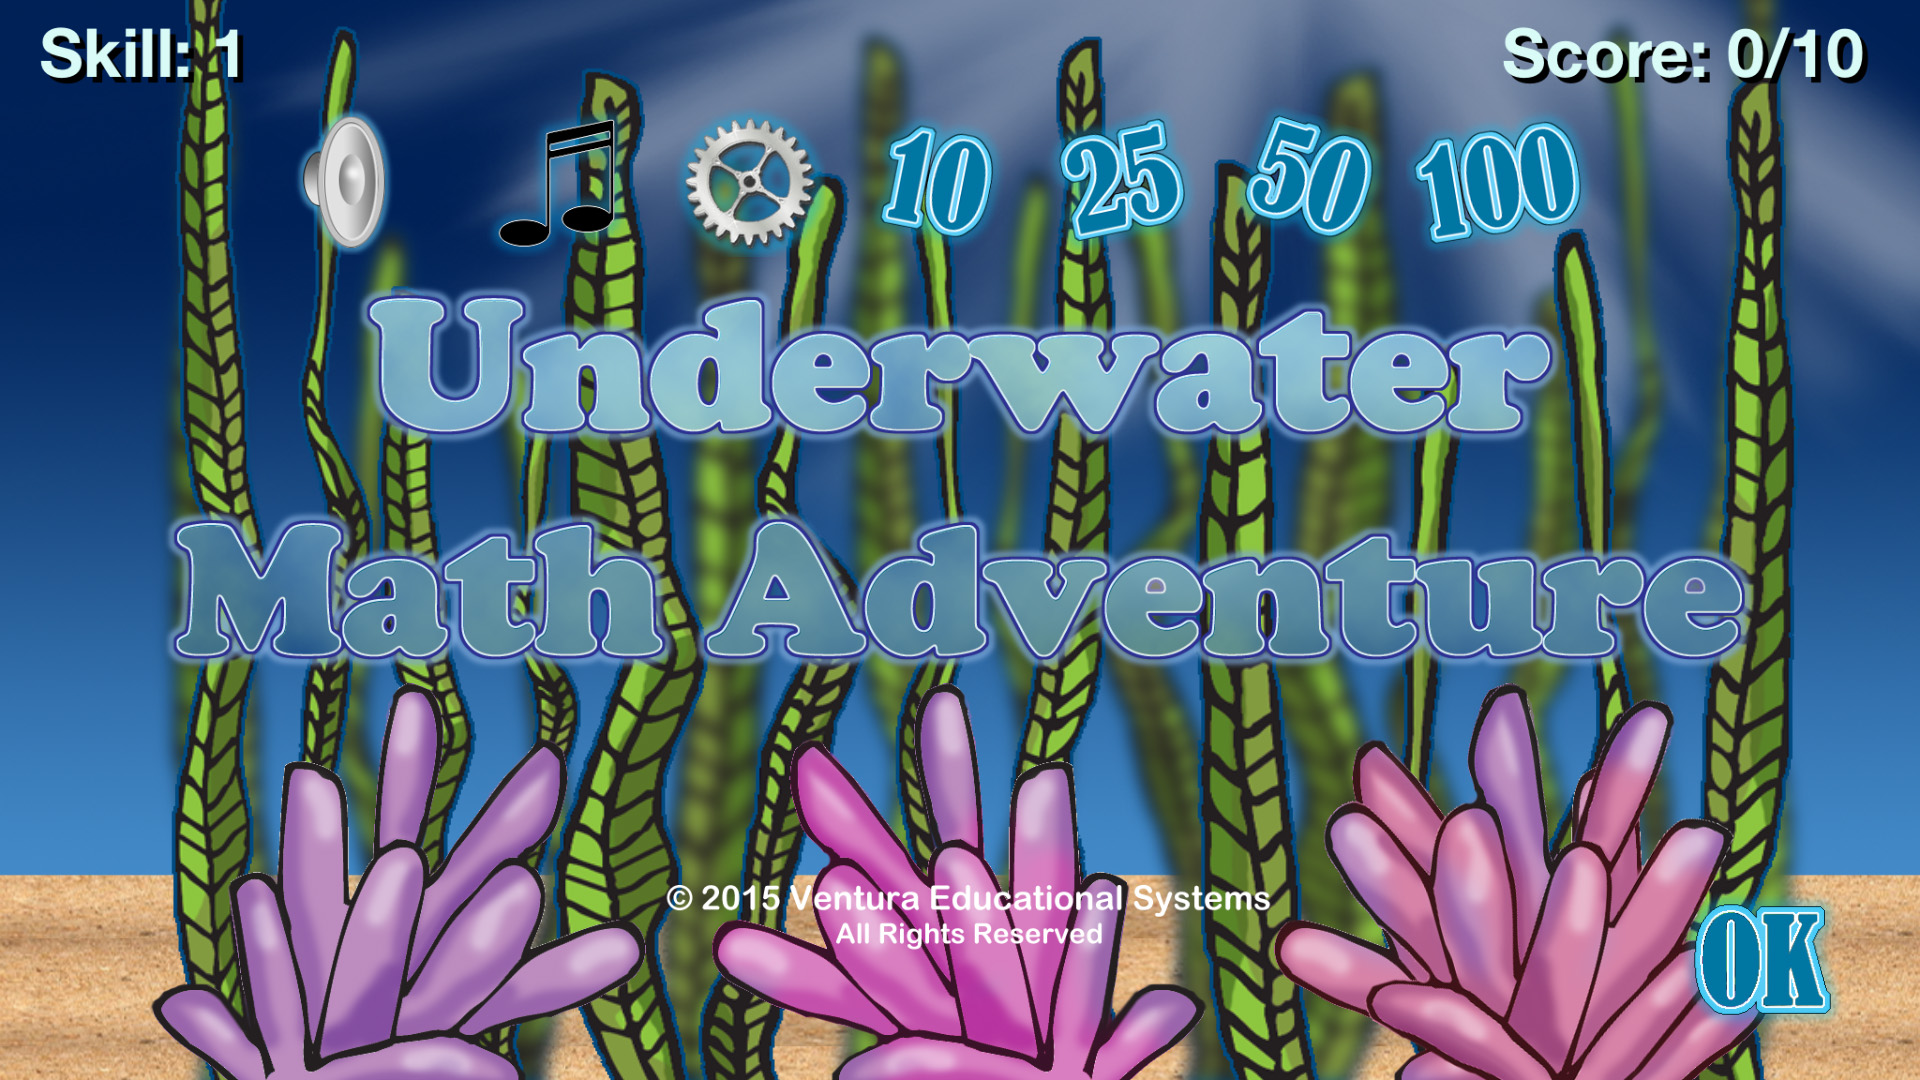 Underwater Math Adventure App Ranking and Store Data | App Annie